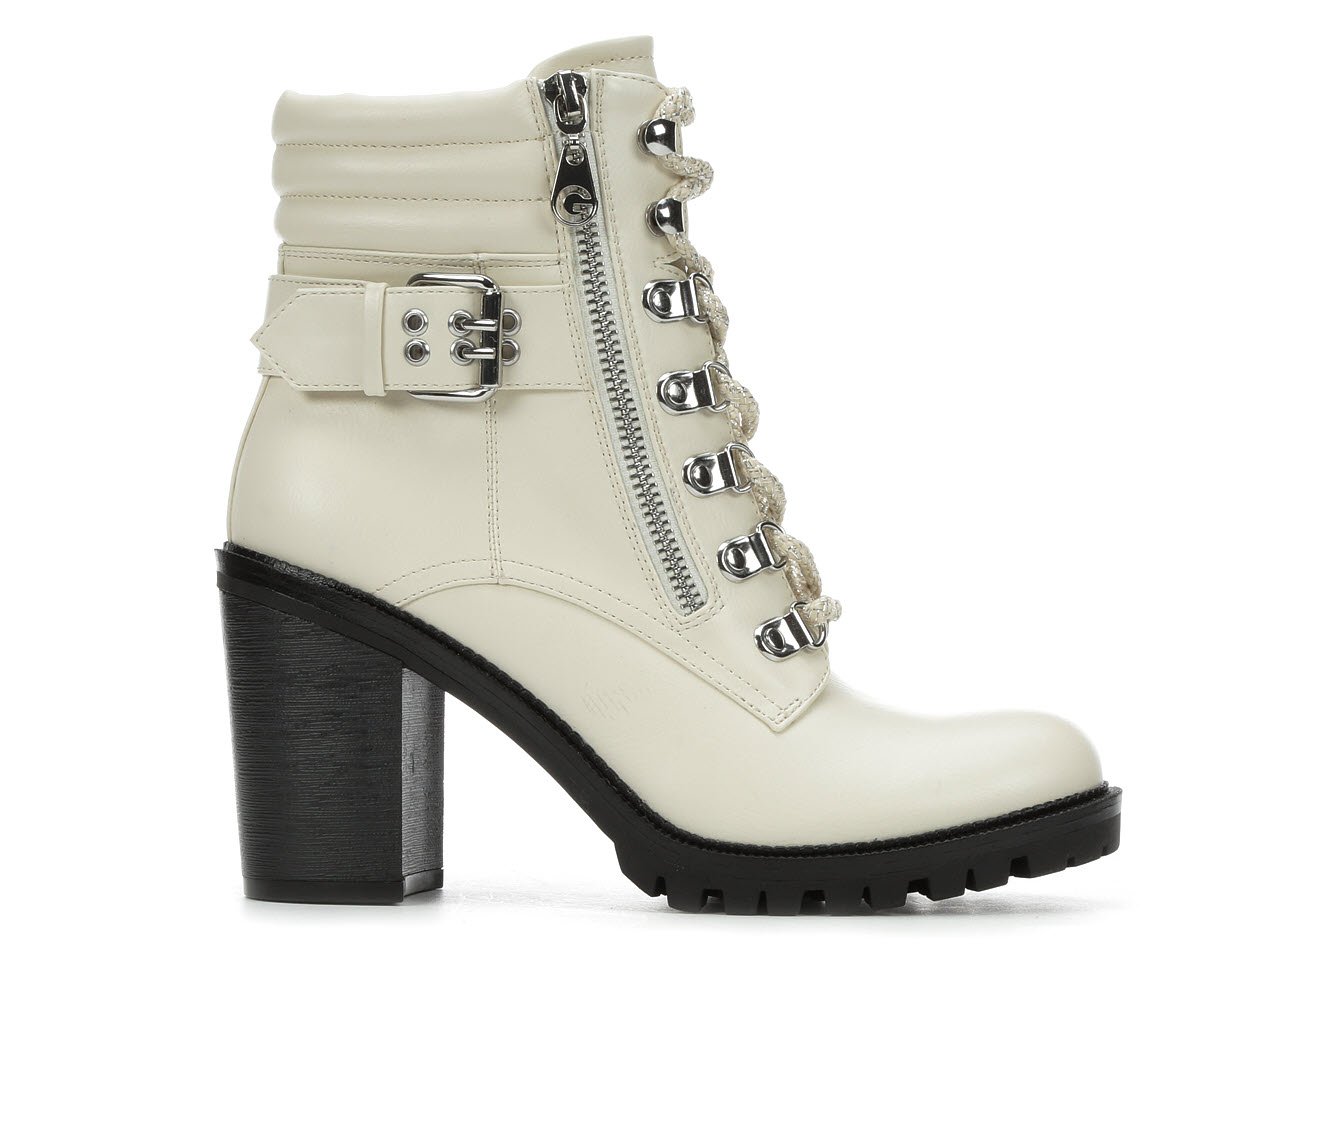 G By Guess Jaylee Women's Boots (White - Faux Leather)